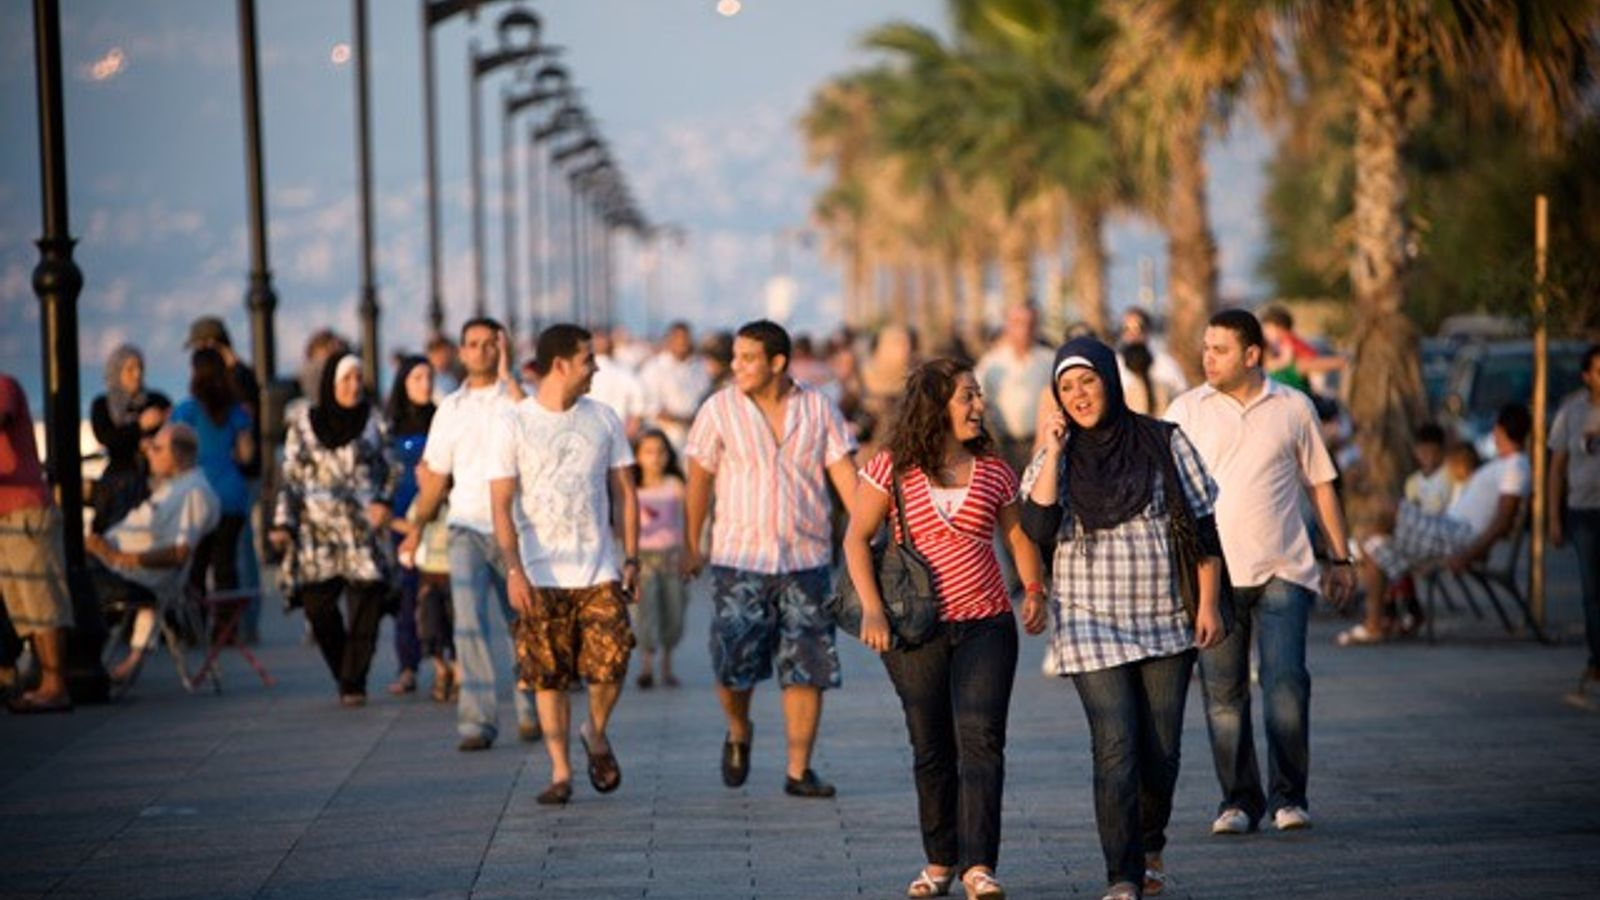 Crowds walk along the Corniche during late afternoon, Beirut, Lebanon.